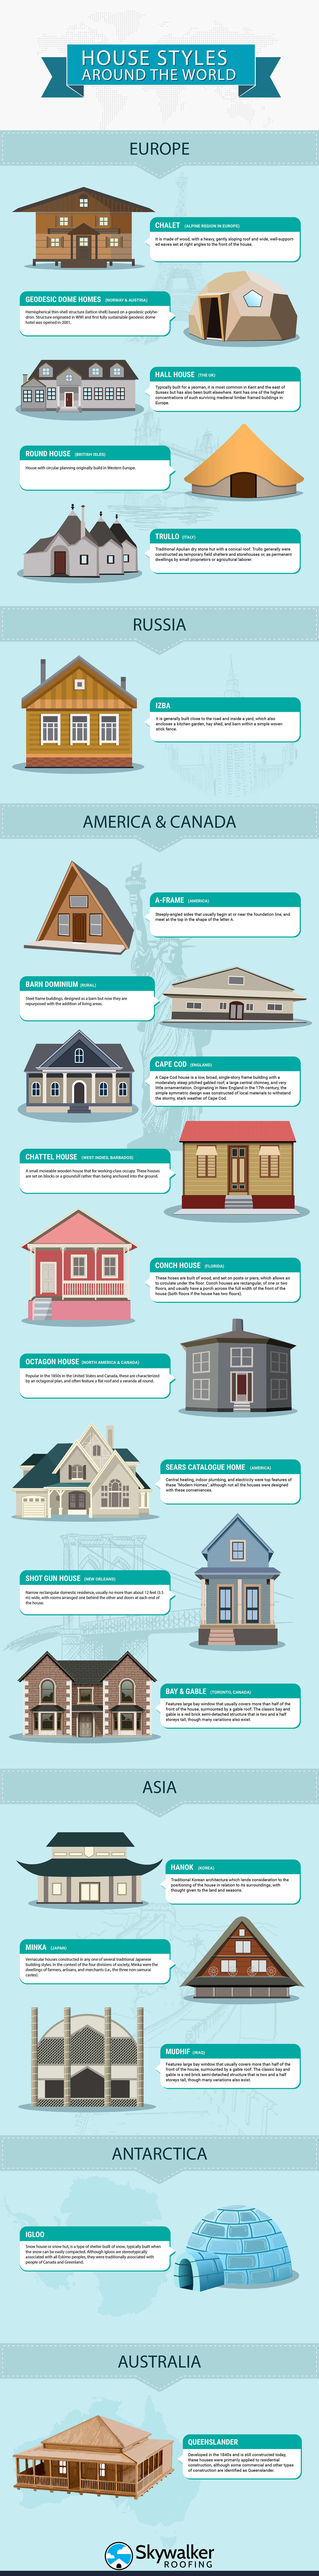 house styles around the world infographic